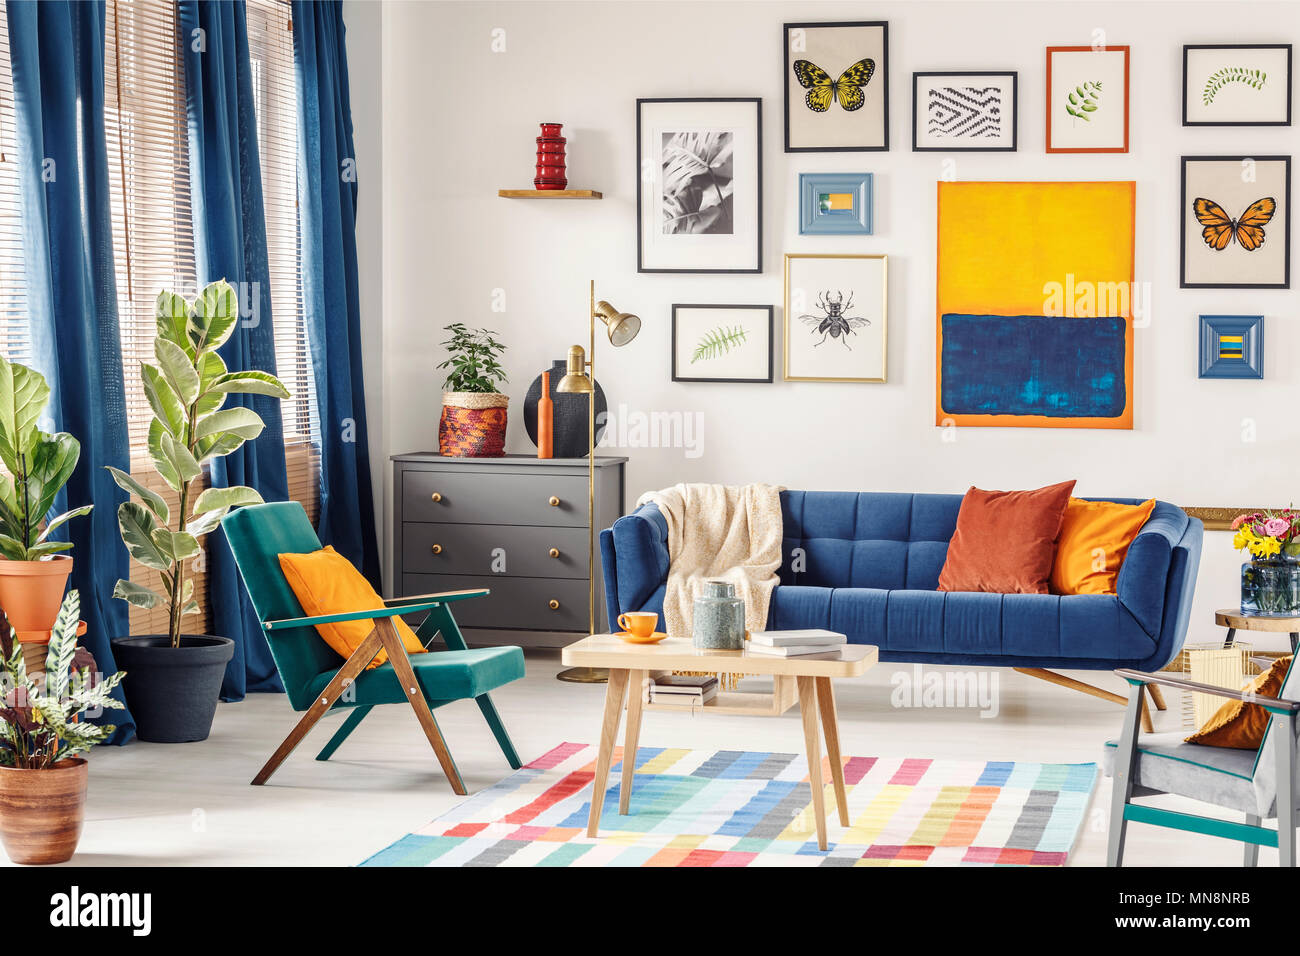 Simple Posters Hanging On The Wall In Bright Living Room